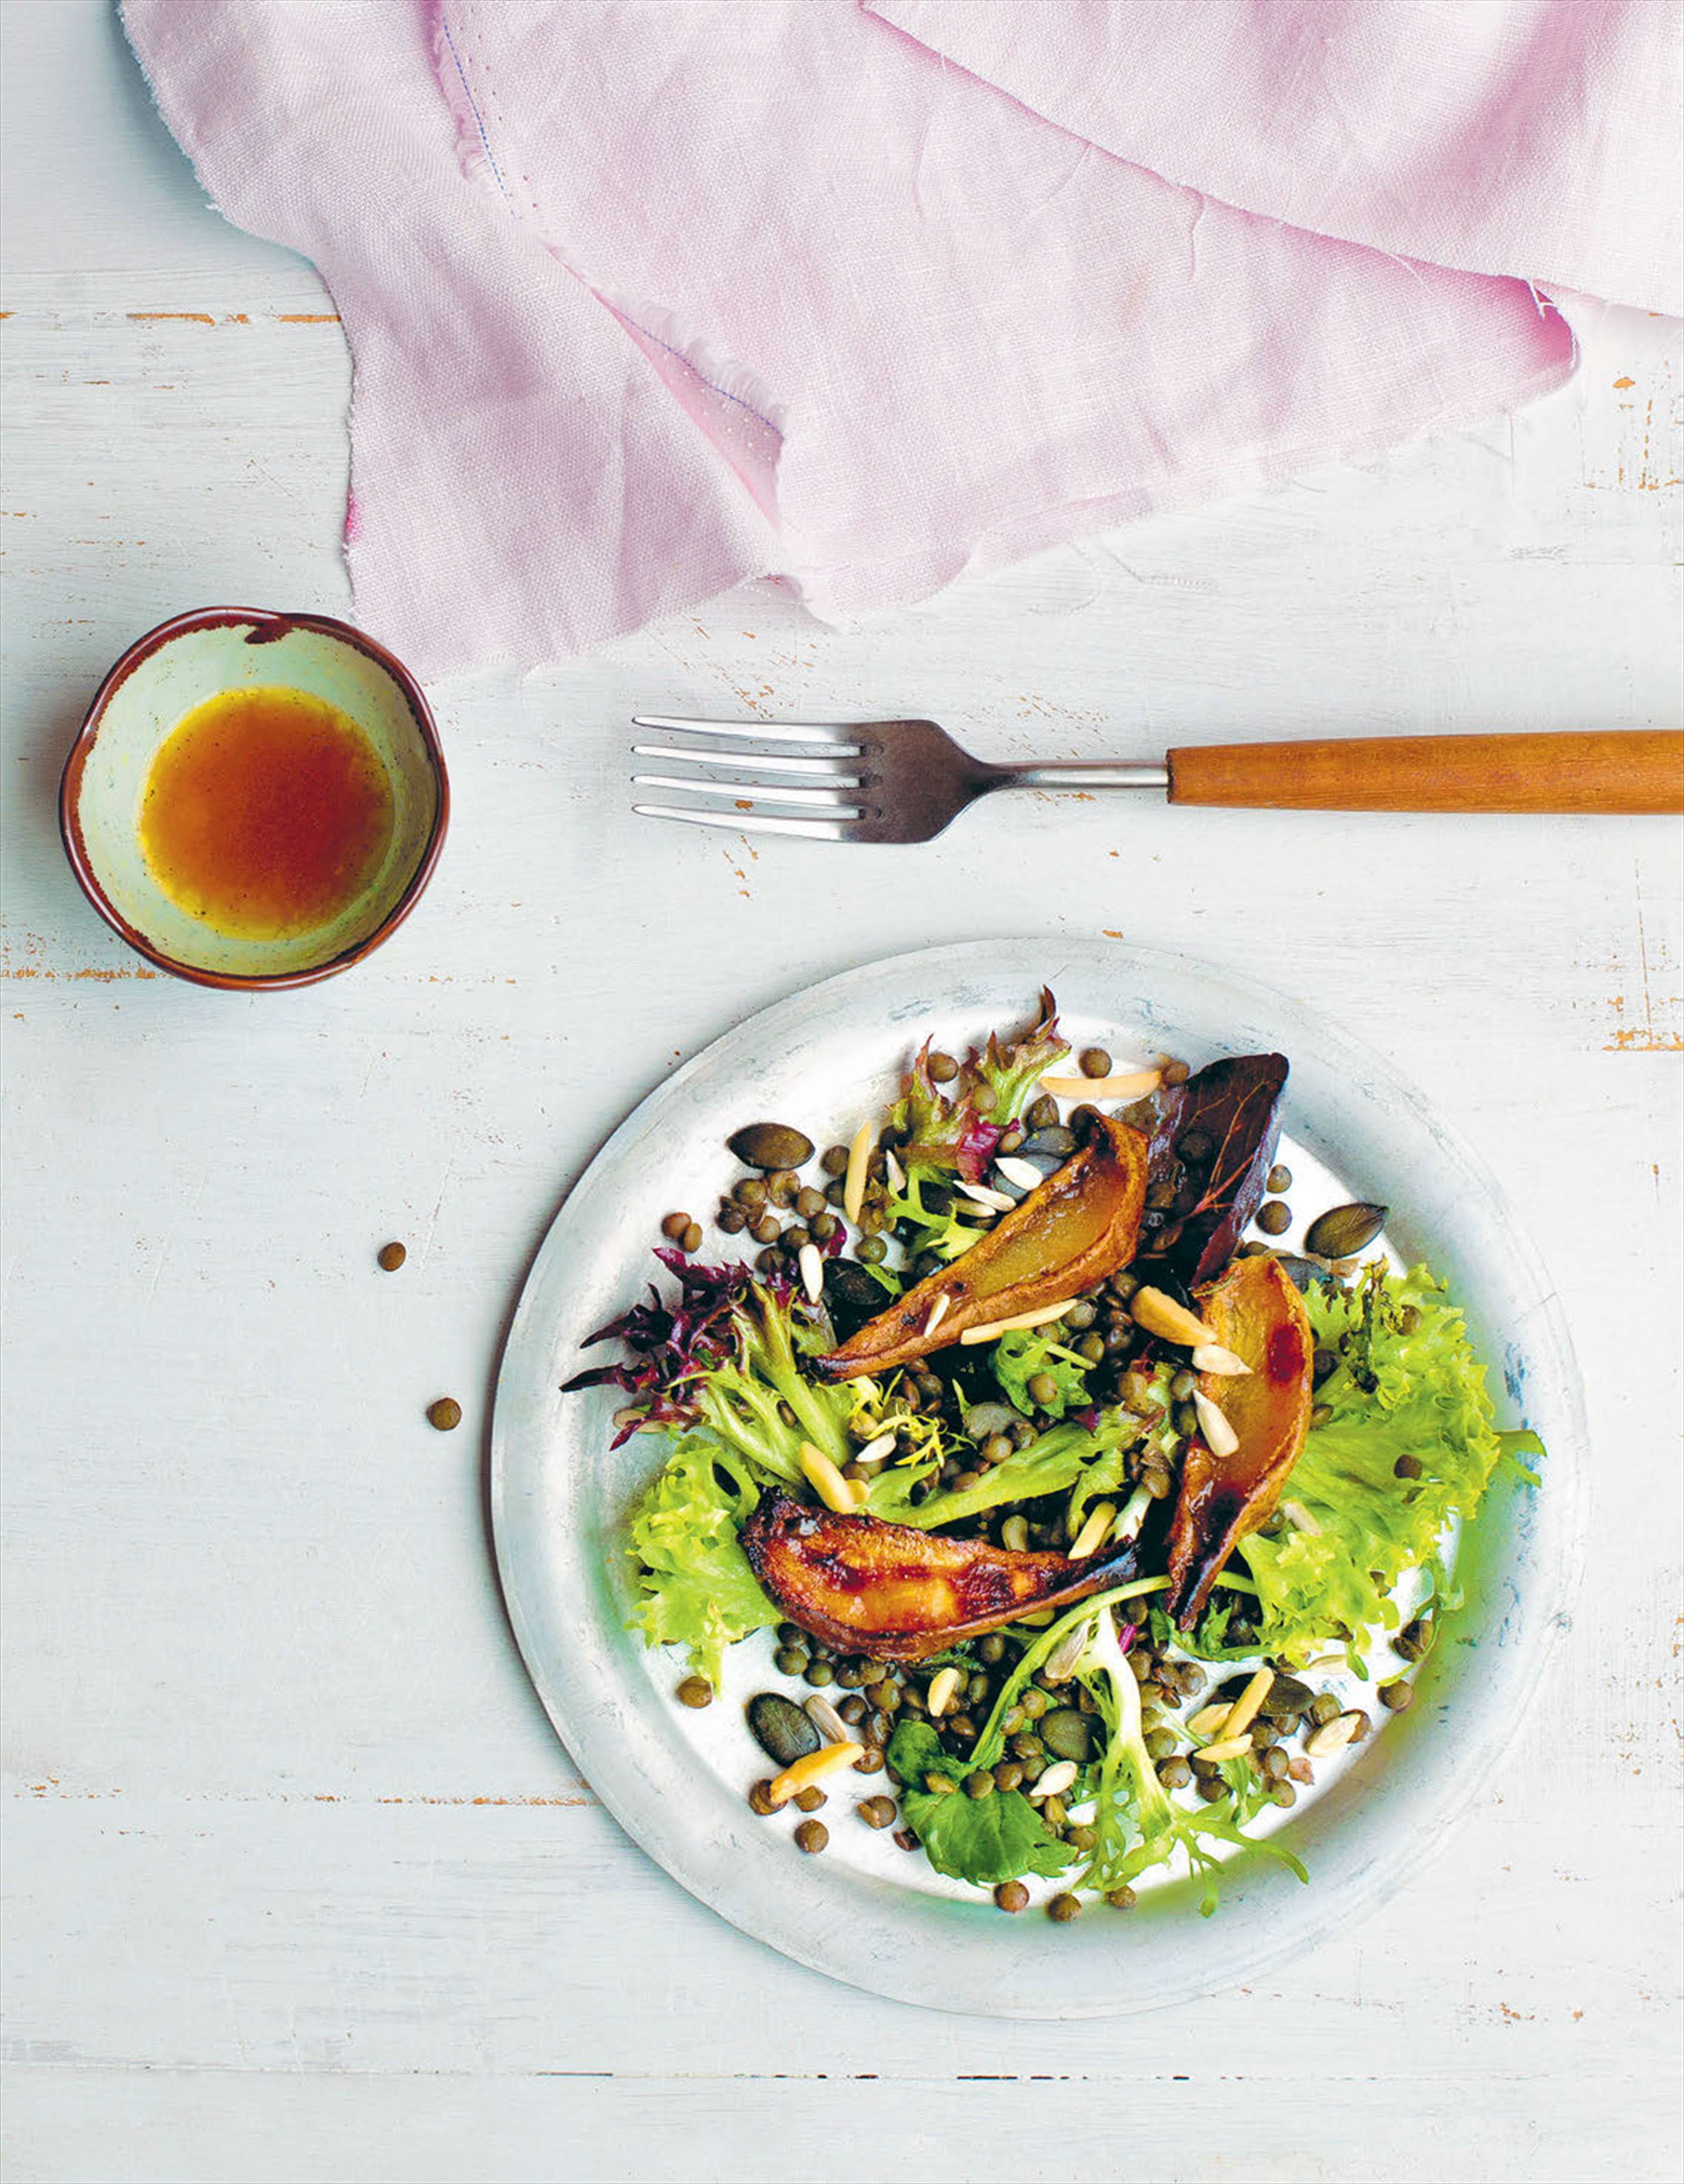 Roasted pear and lentil salad